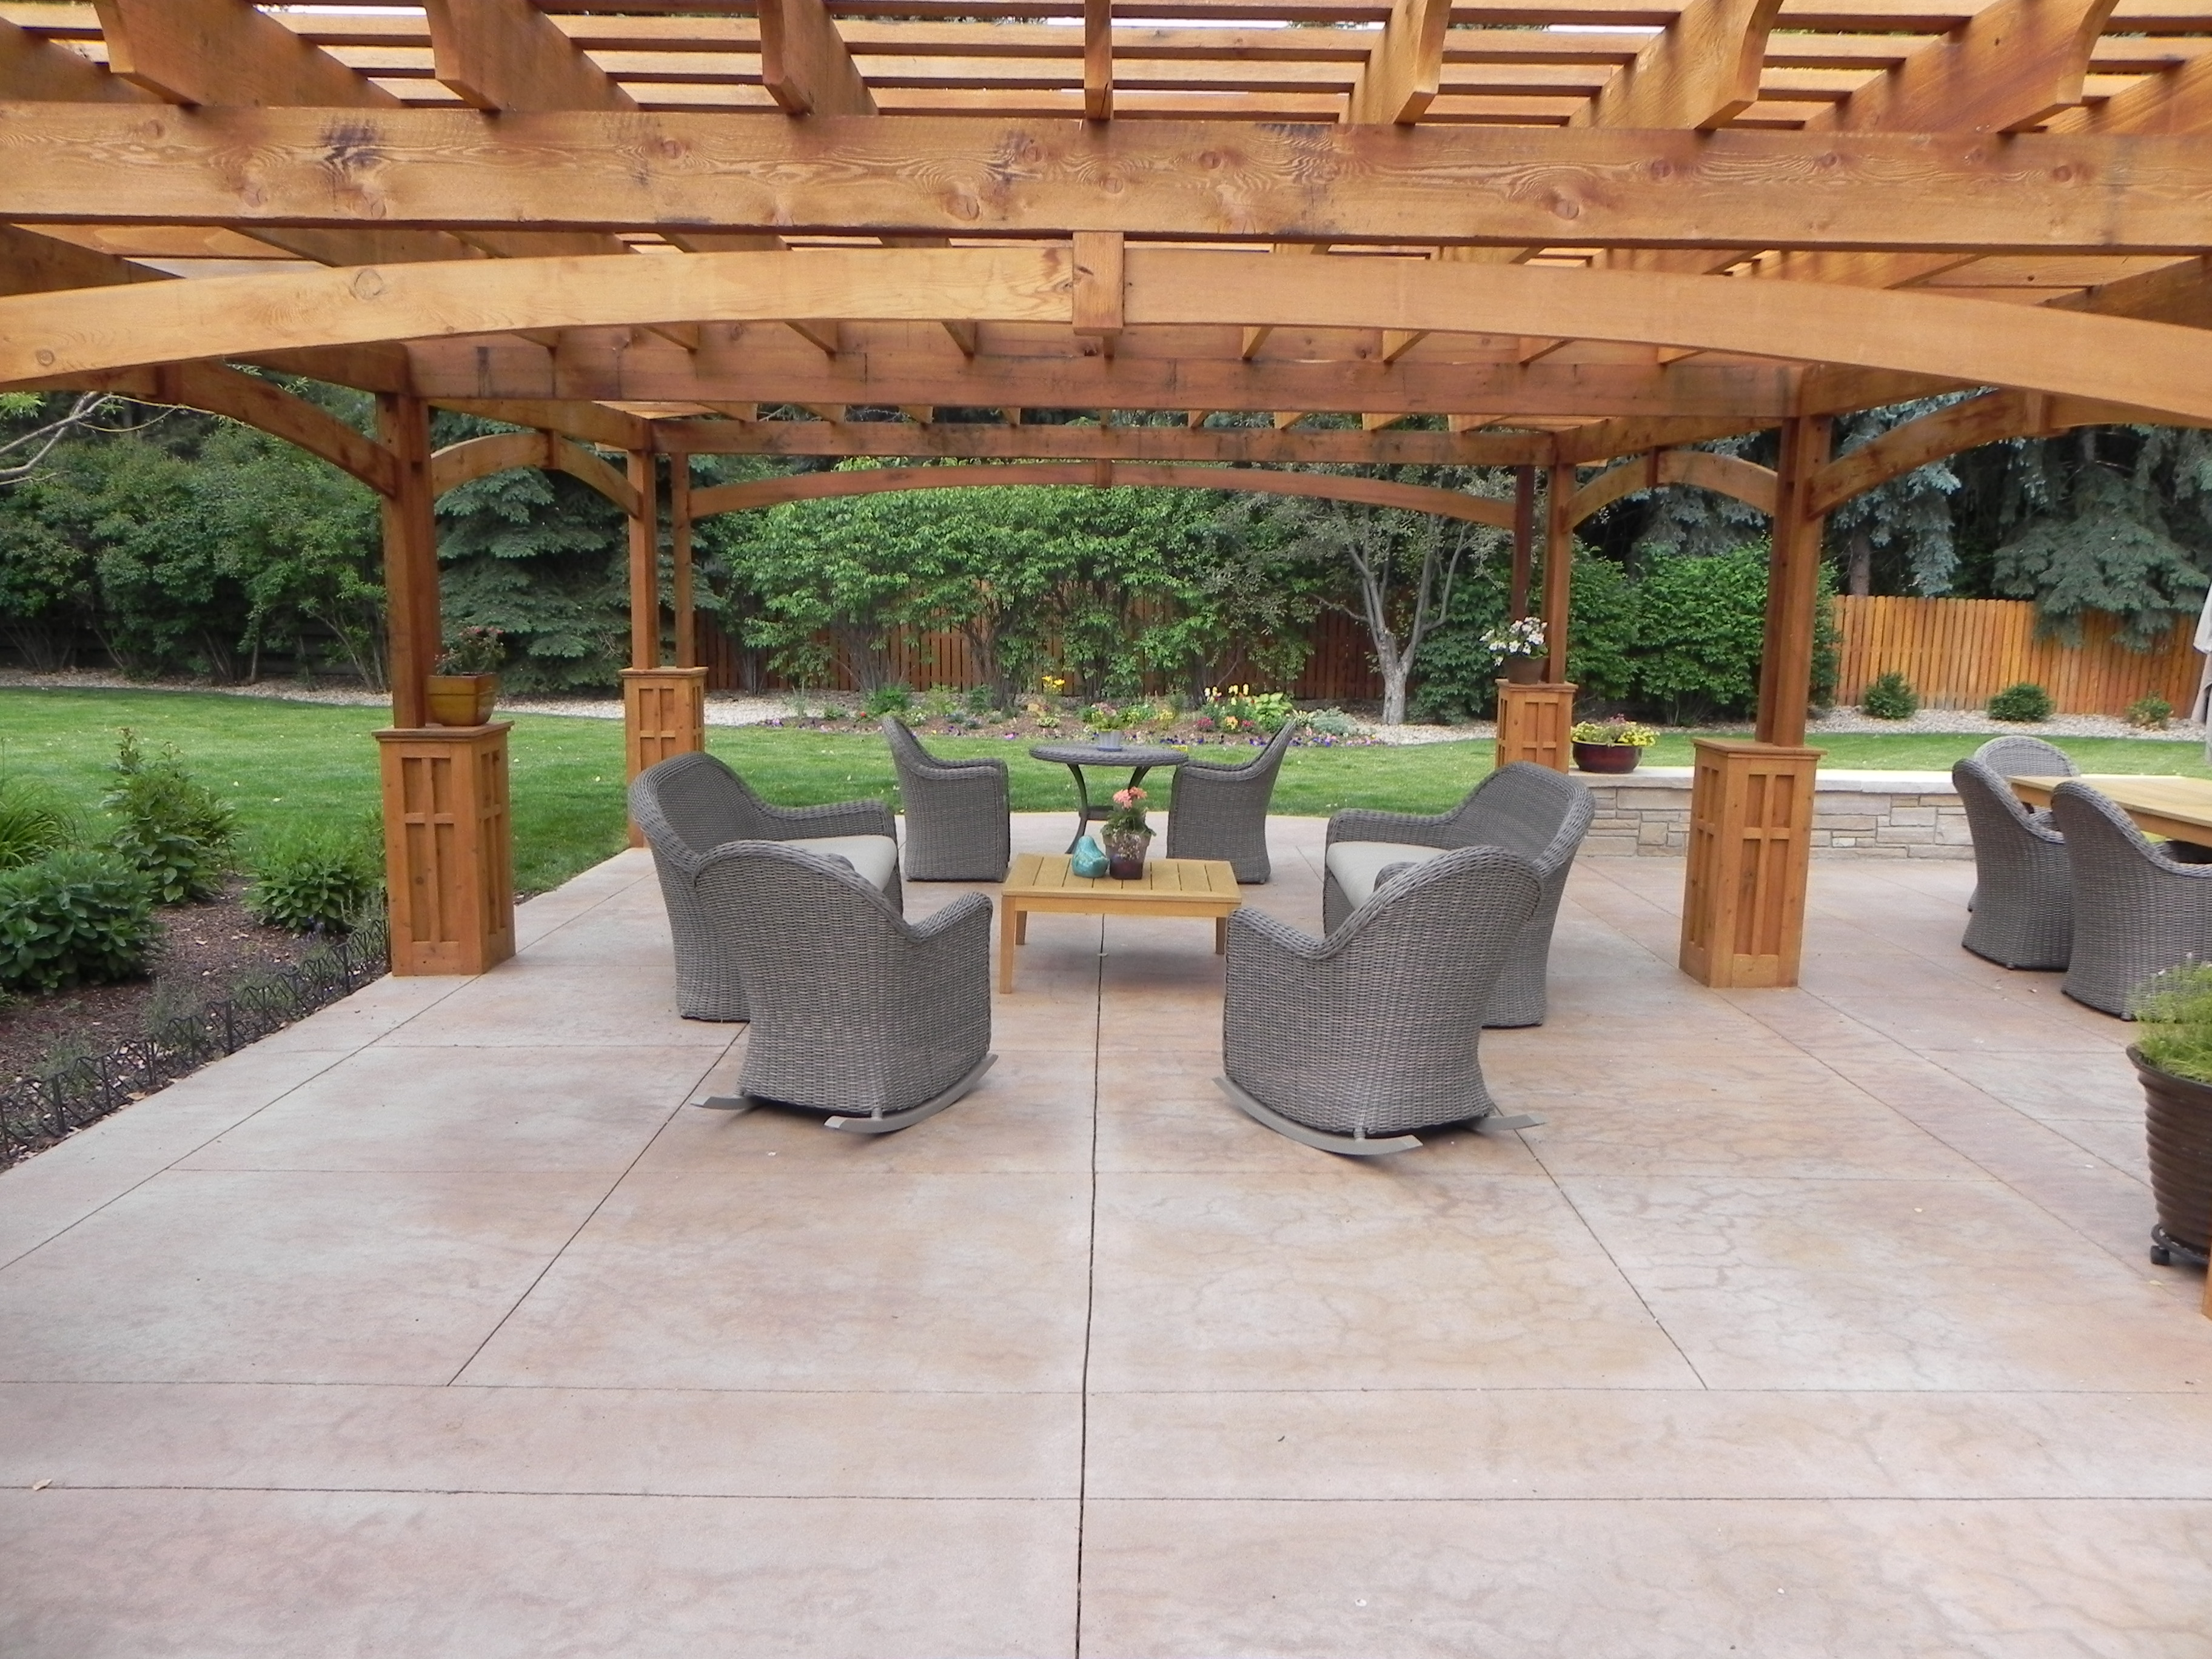 Stamped concrete patio ideas with pergola for outdoor best moment